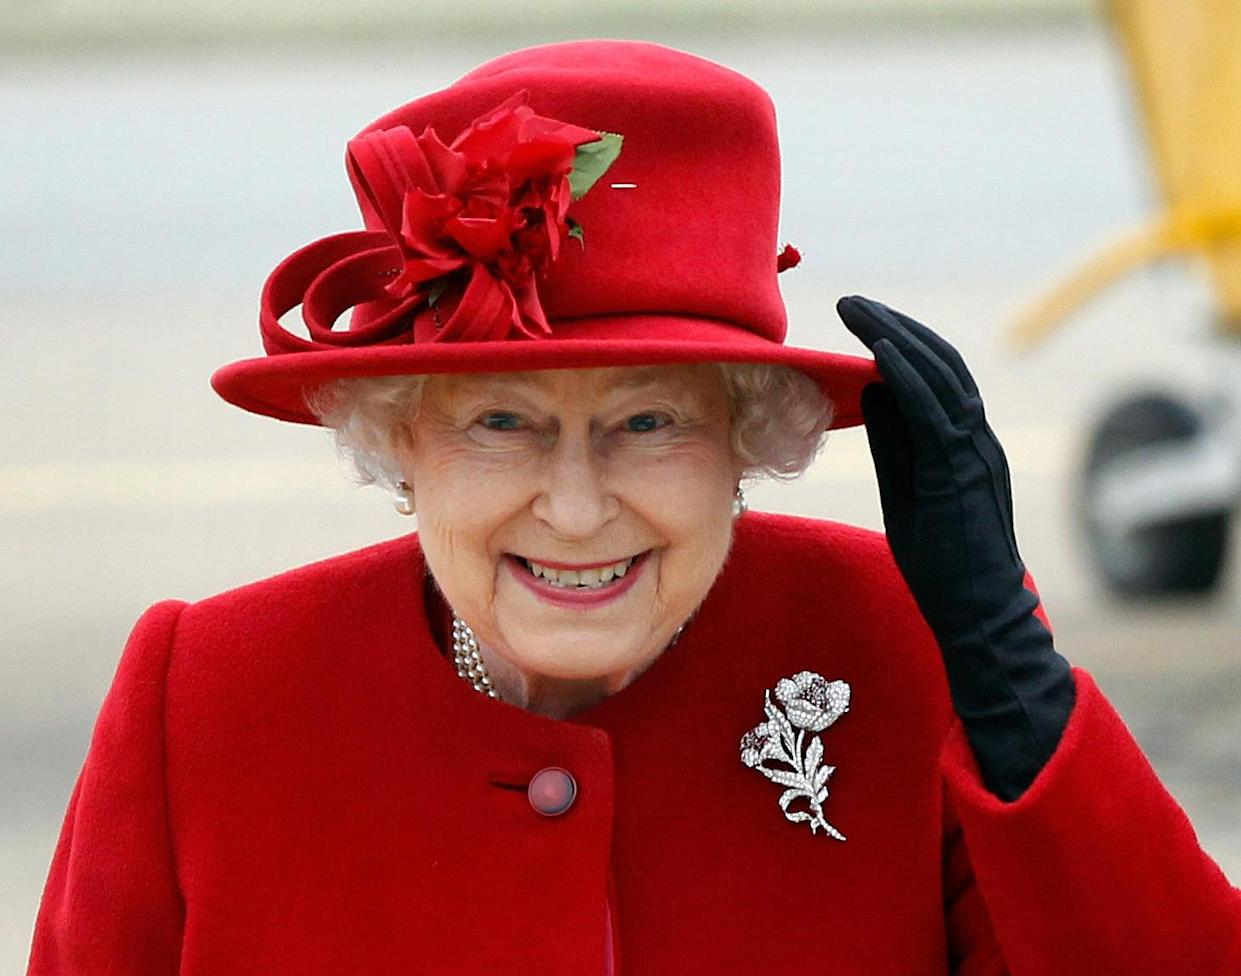 Britain's Queen Elizabeth II holds on to her hat in high winds as she arrives for a visit to RAF Valley in Anglesey, Wales on April 1, 2011. Britain's Queen Elizabeth II and Prince Philip, The Duke of Edinburgh today visited RAF Valley in Anglesey in high and were given a personal tour of an RAF search and rescue helicopter by Prince William. AFP PHOTO / Christopher Furlong /WPA POOL (Photo by Christopher Furlong / POOL / AFP) (Photo by CHRISTOPHER FURLONG/POOL/AFP via Getty Images)